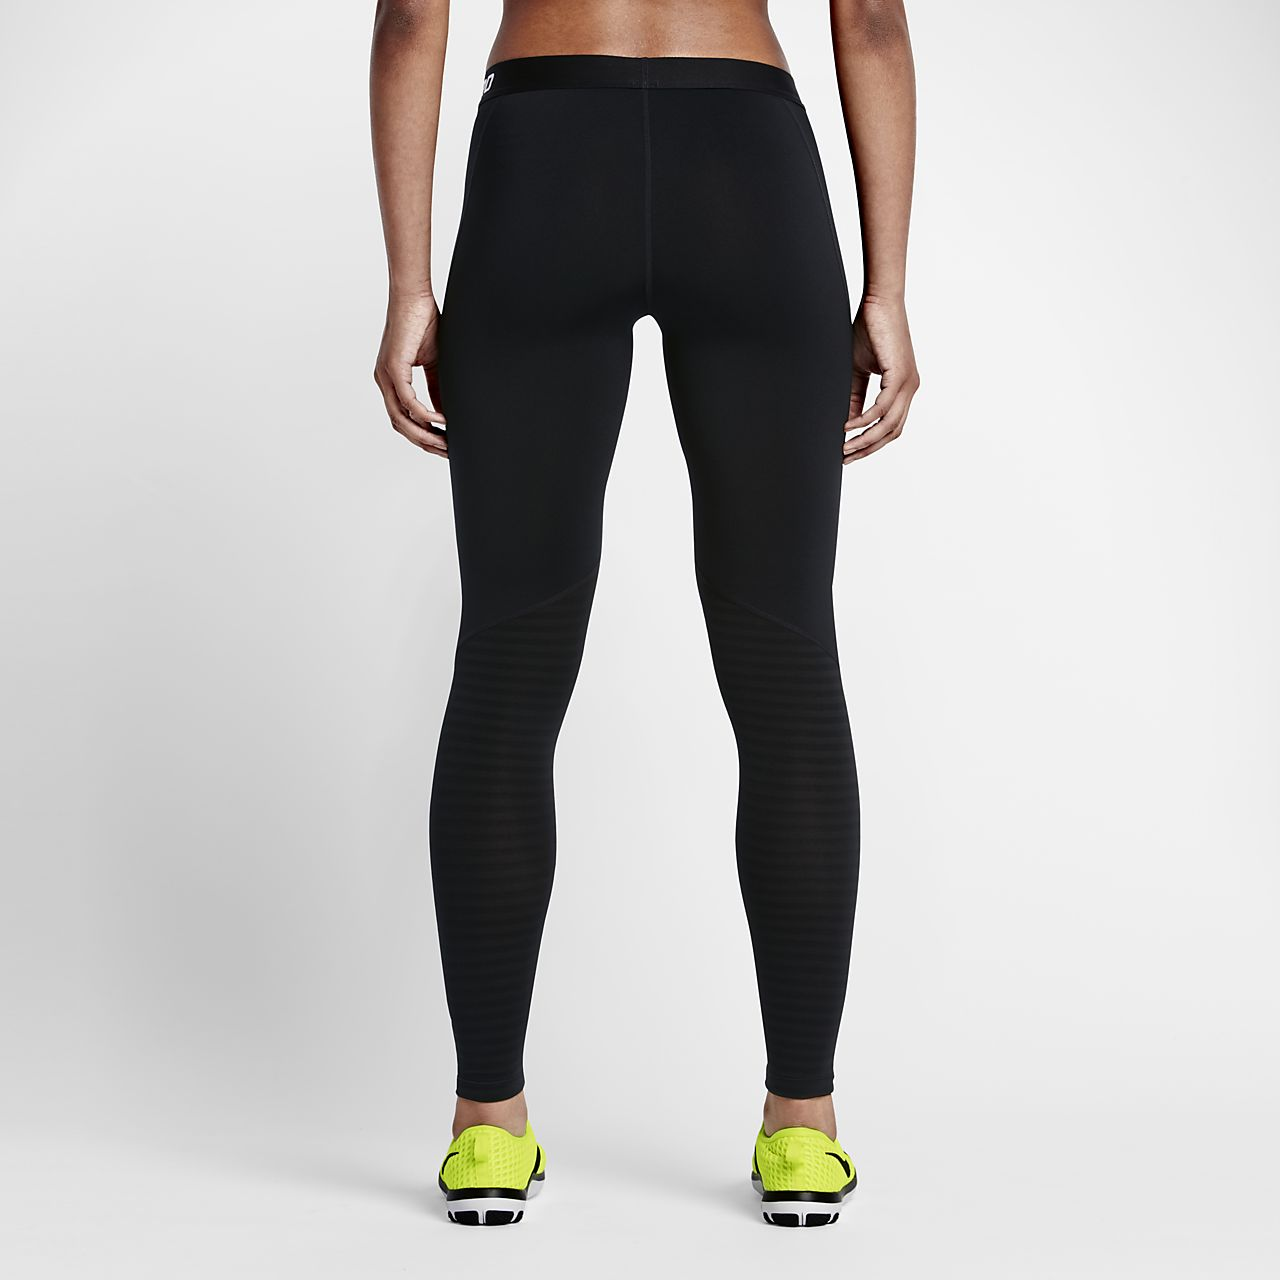 nike pro warm women 39 s training tights. Black Bedroom Furniture Sets. Home Design Ideas